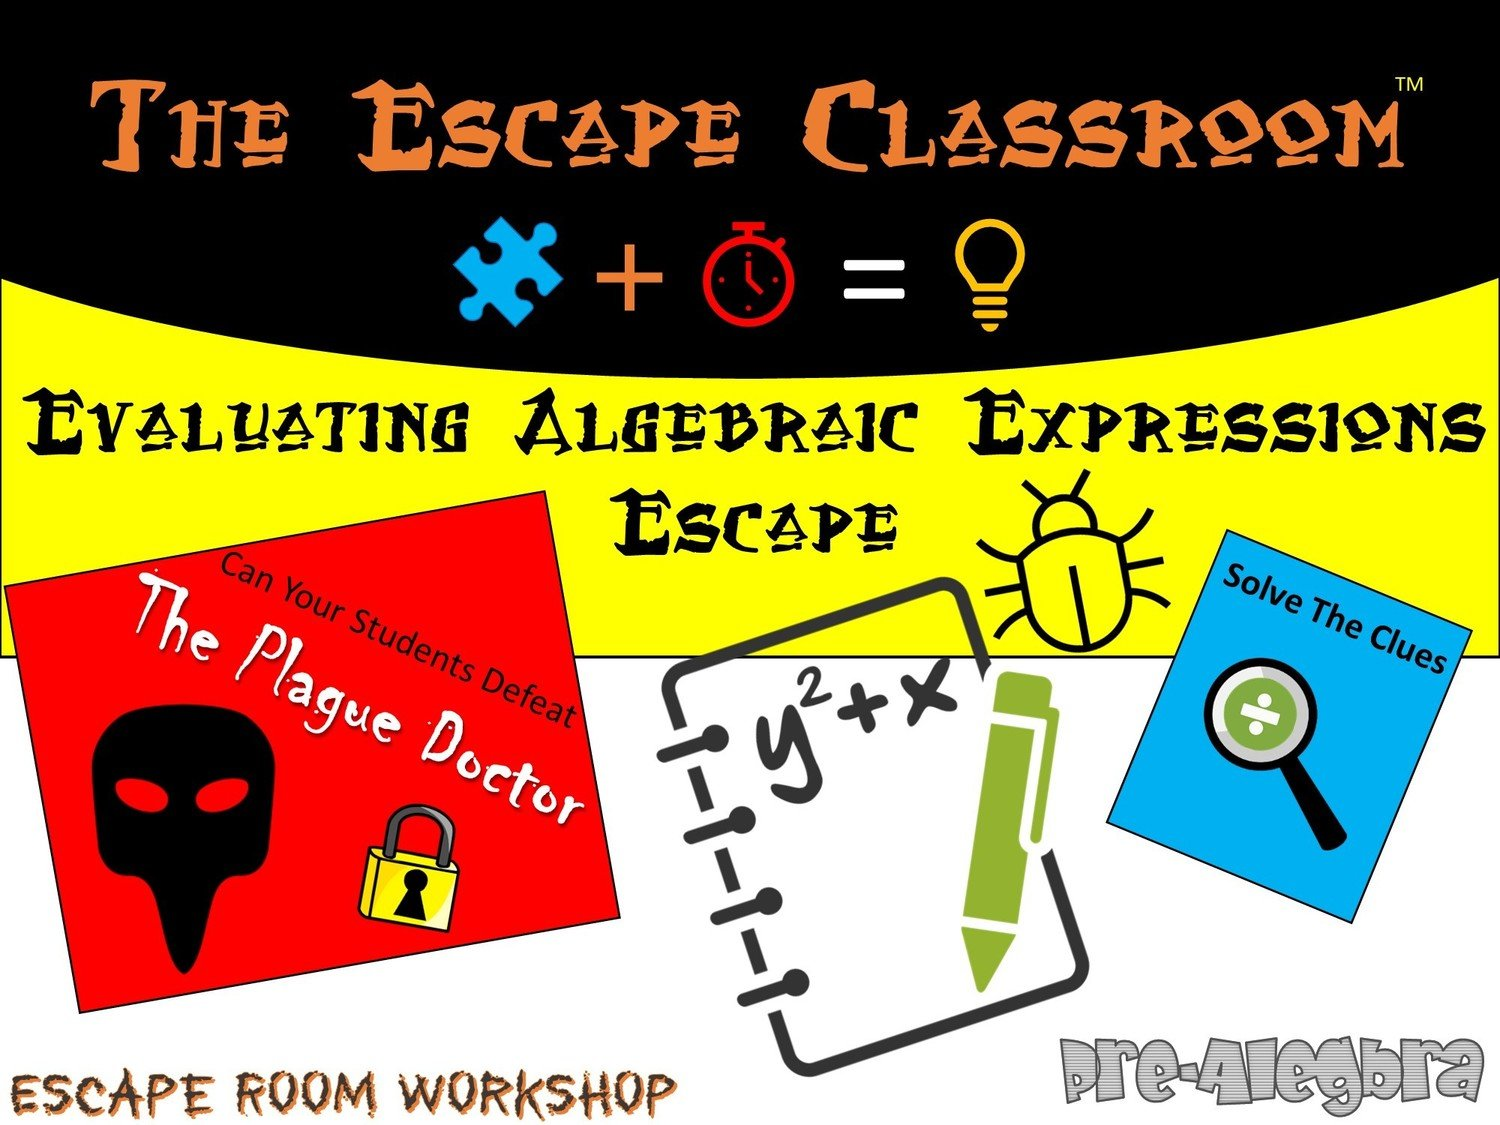 Evaluating Algebraic Expressions 1 Teacher License